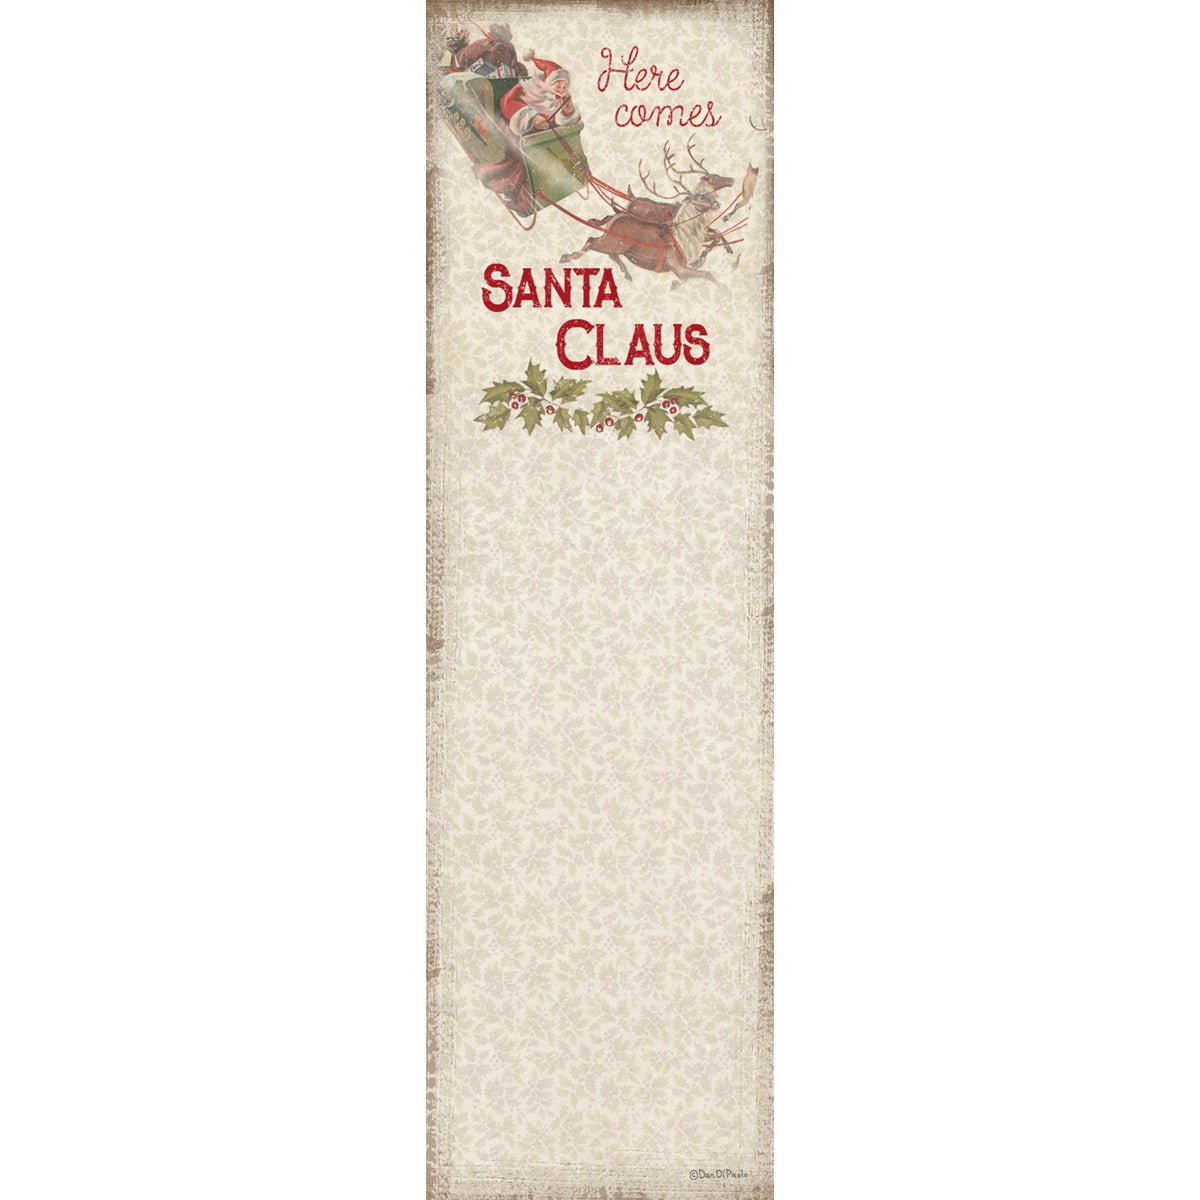 List Notepad - Here Comes Santa Claus